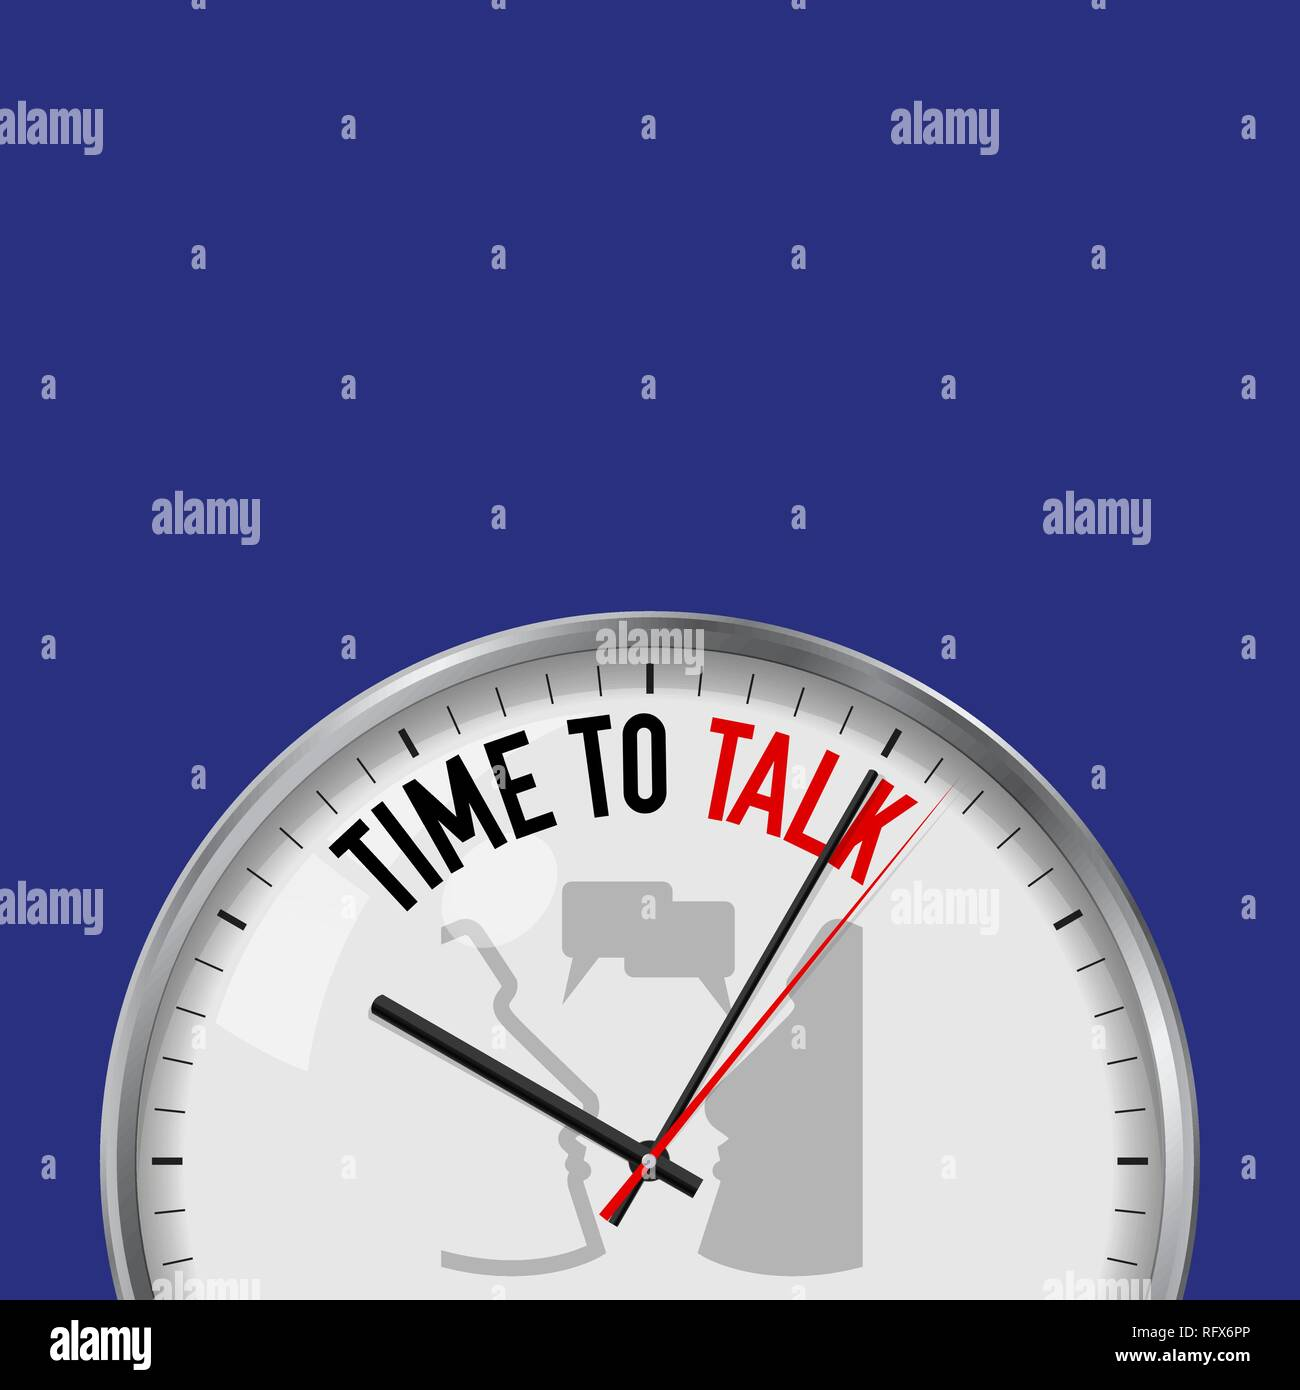 Time to Talk. White Vector Clock with Motivational Slogan. Analog Metal Watch with Glass. Vector Illustration Isolated on Solid Color Background. Face Stock Vector